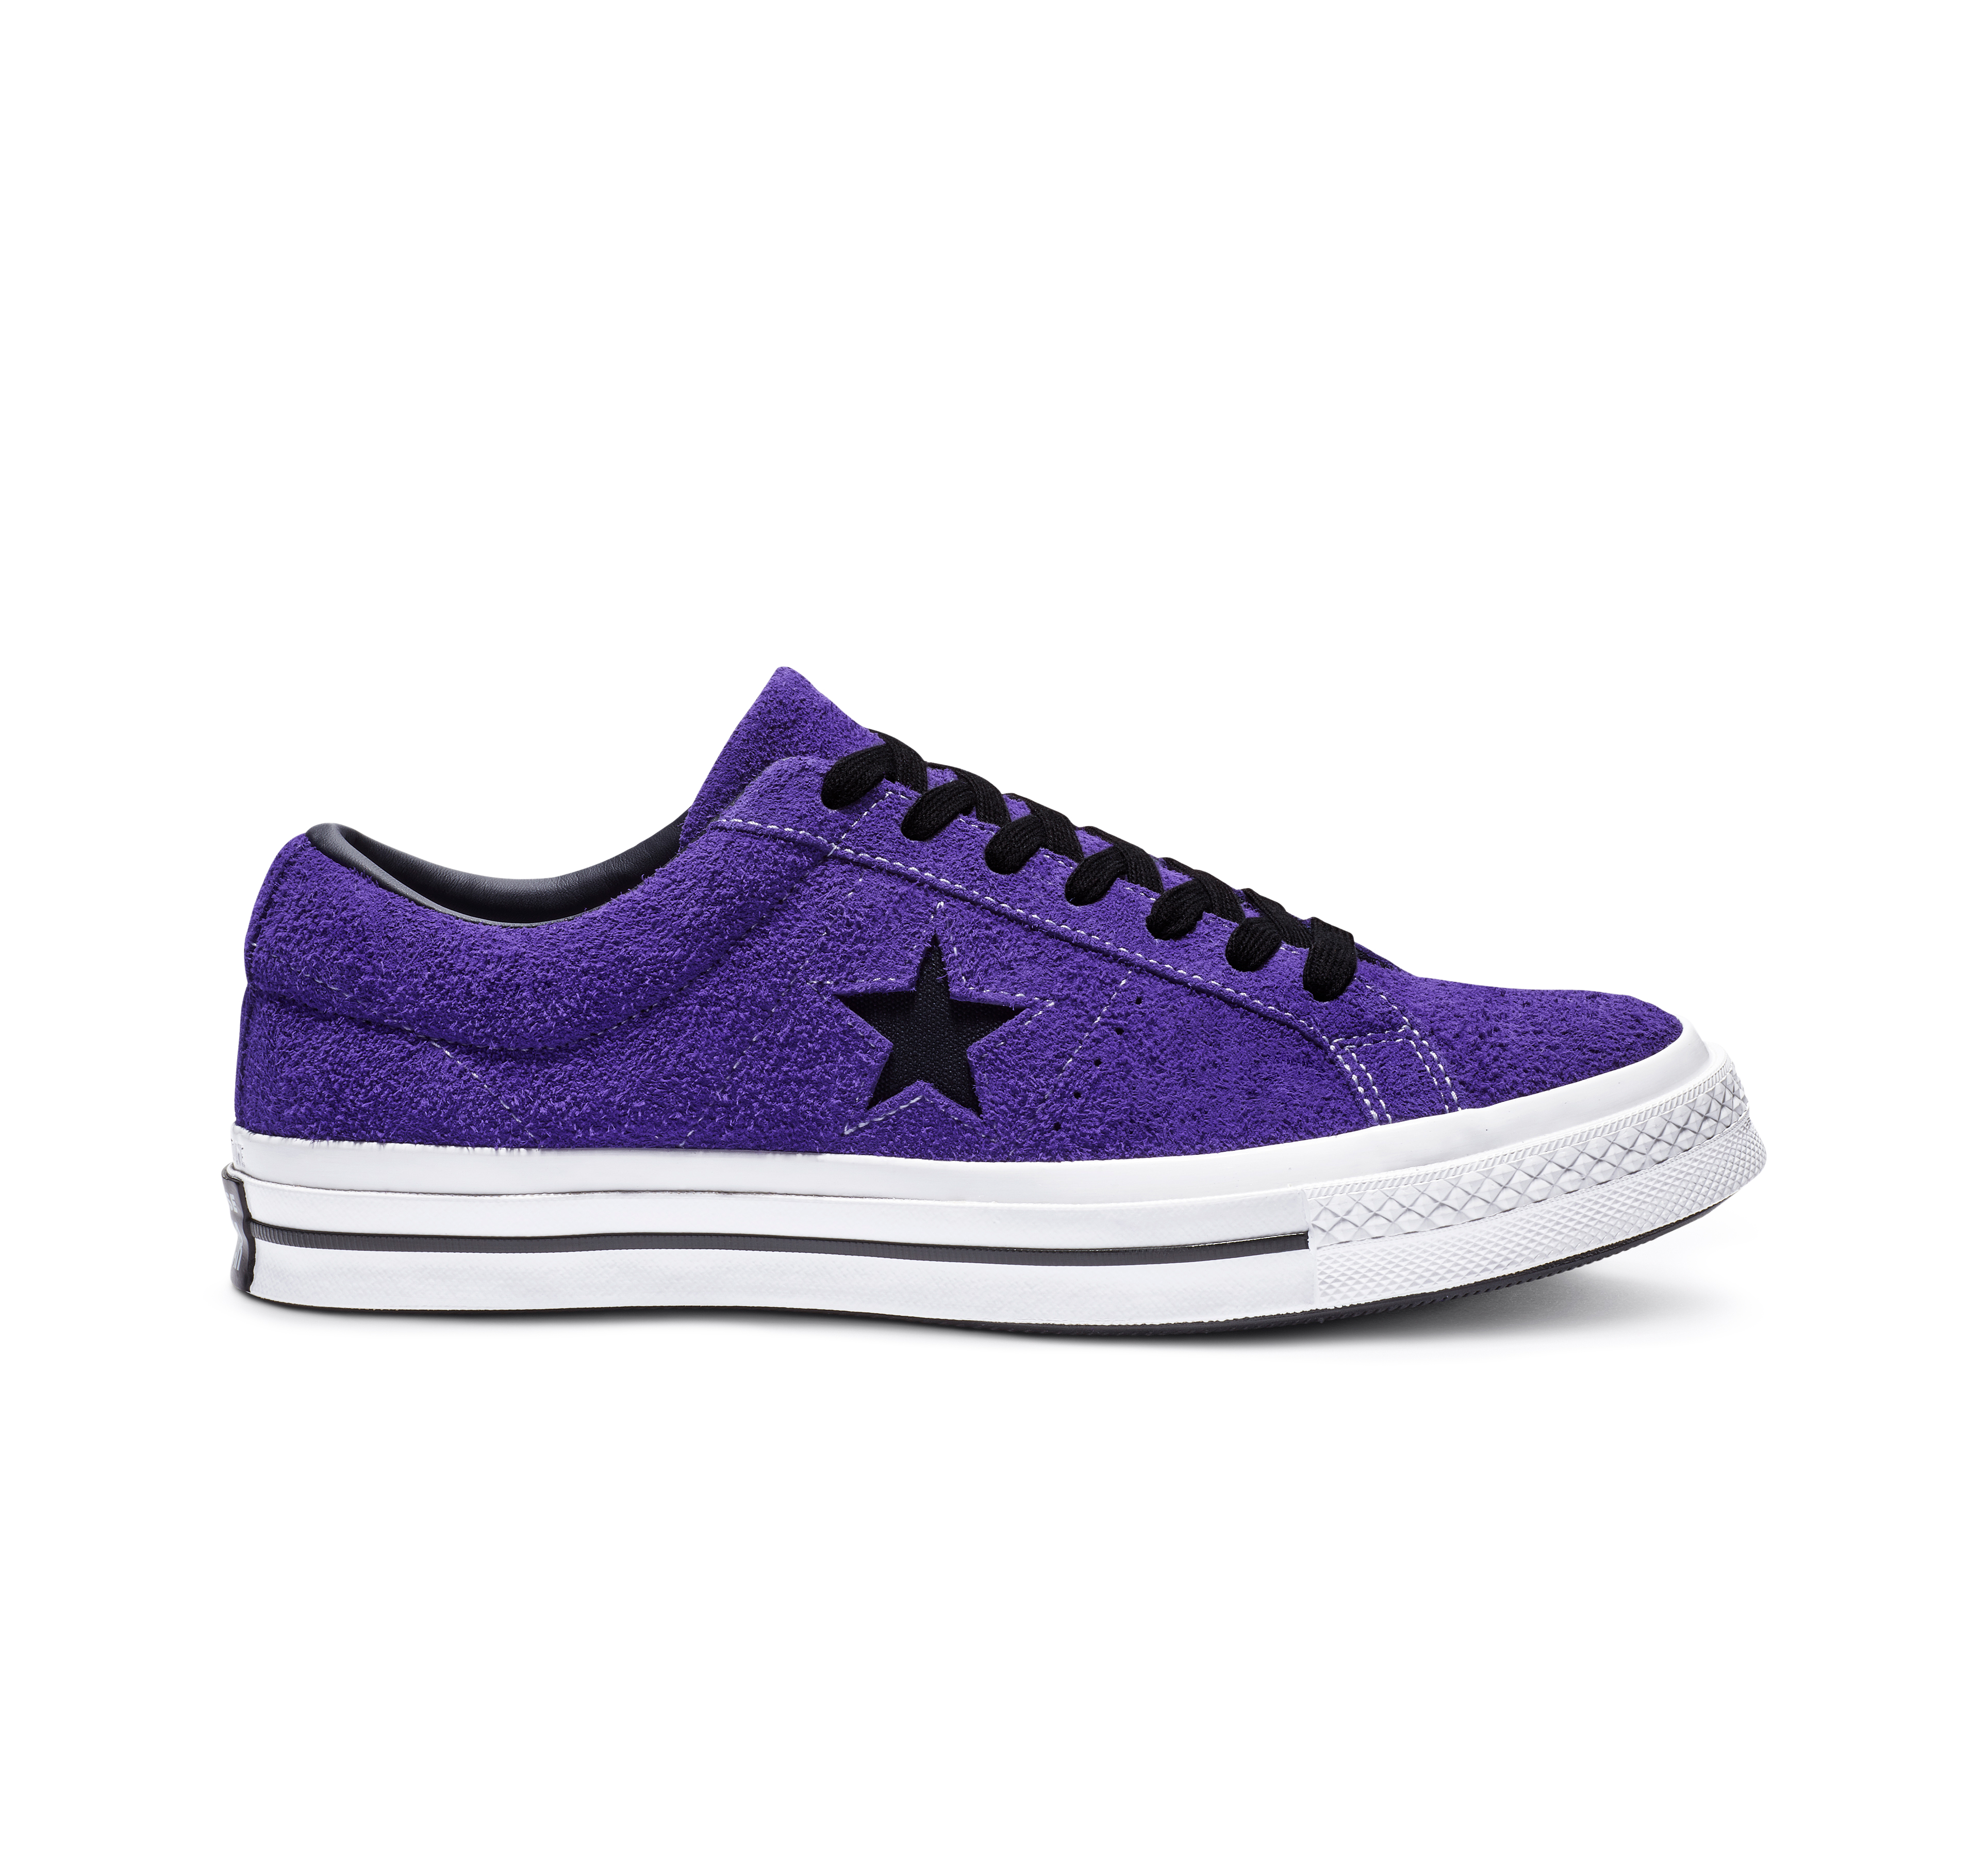 Converse One Star Ox Mens Trainers Bold Citron Yellow Lace Up Skate Shoes